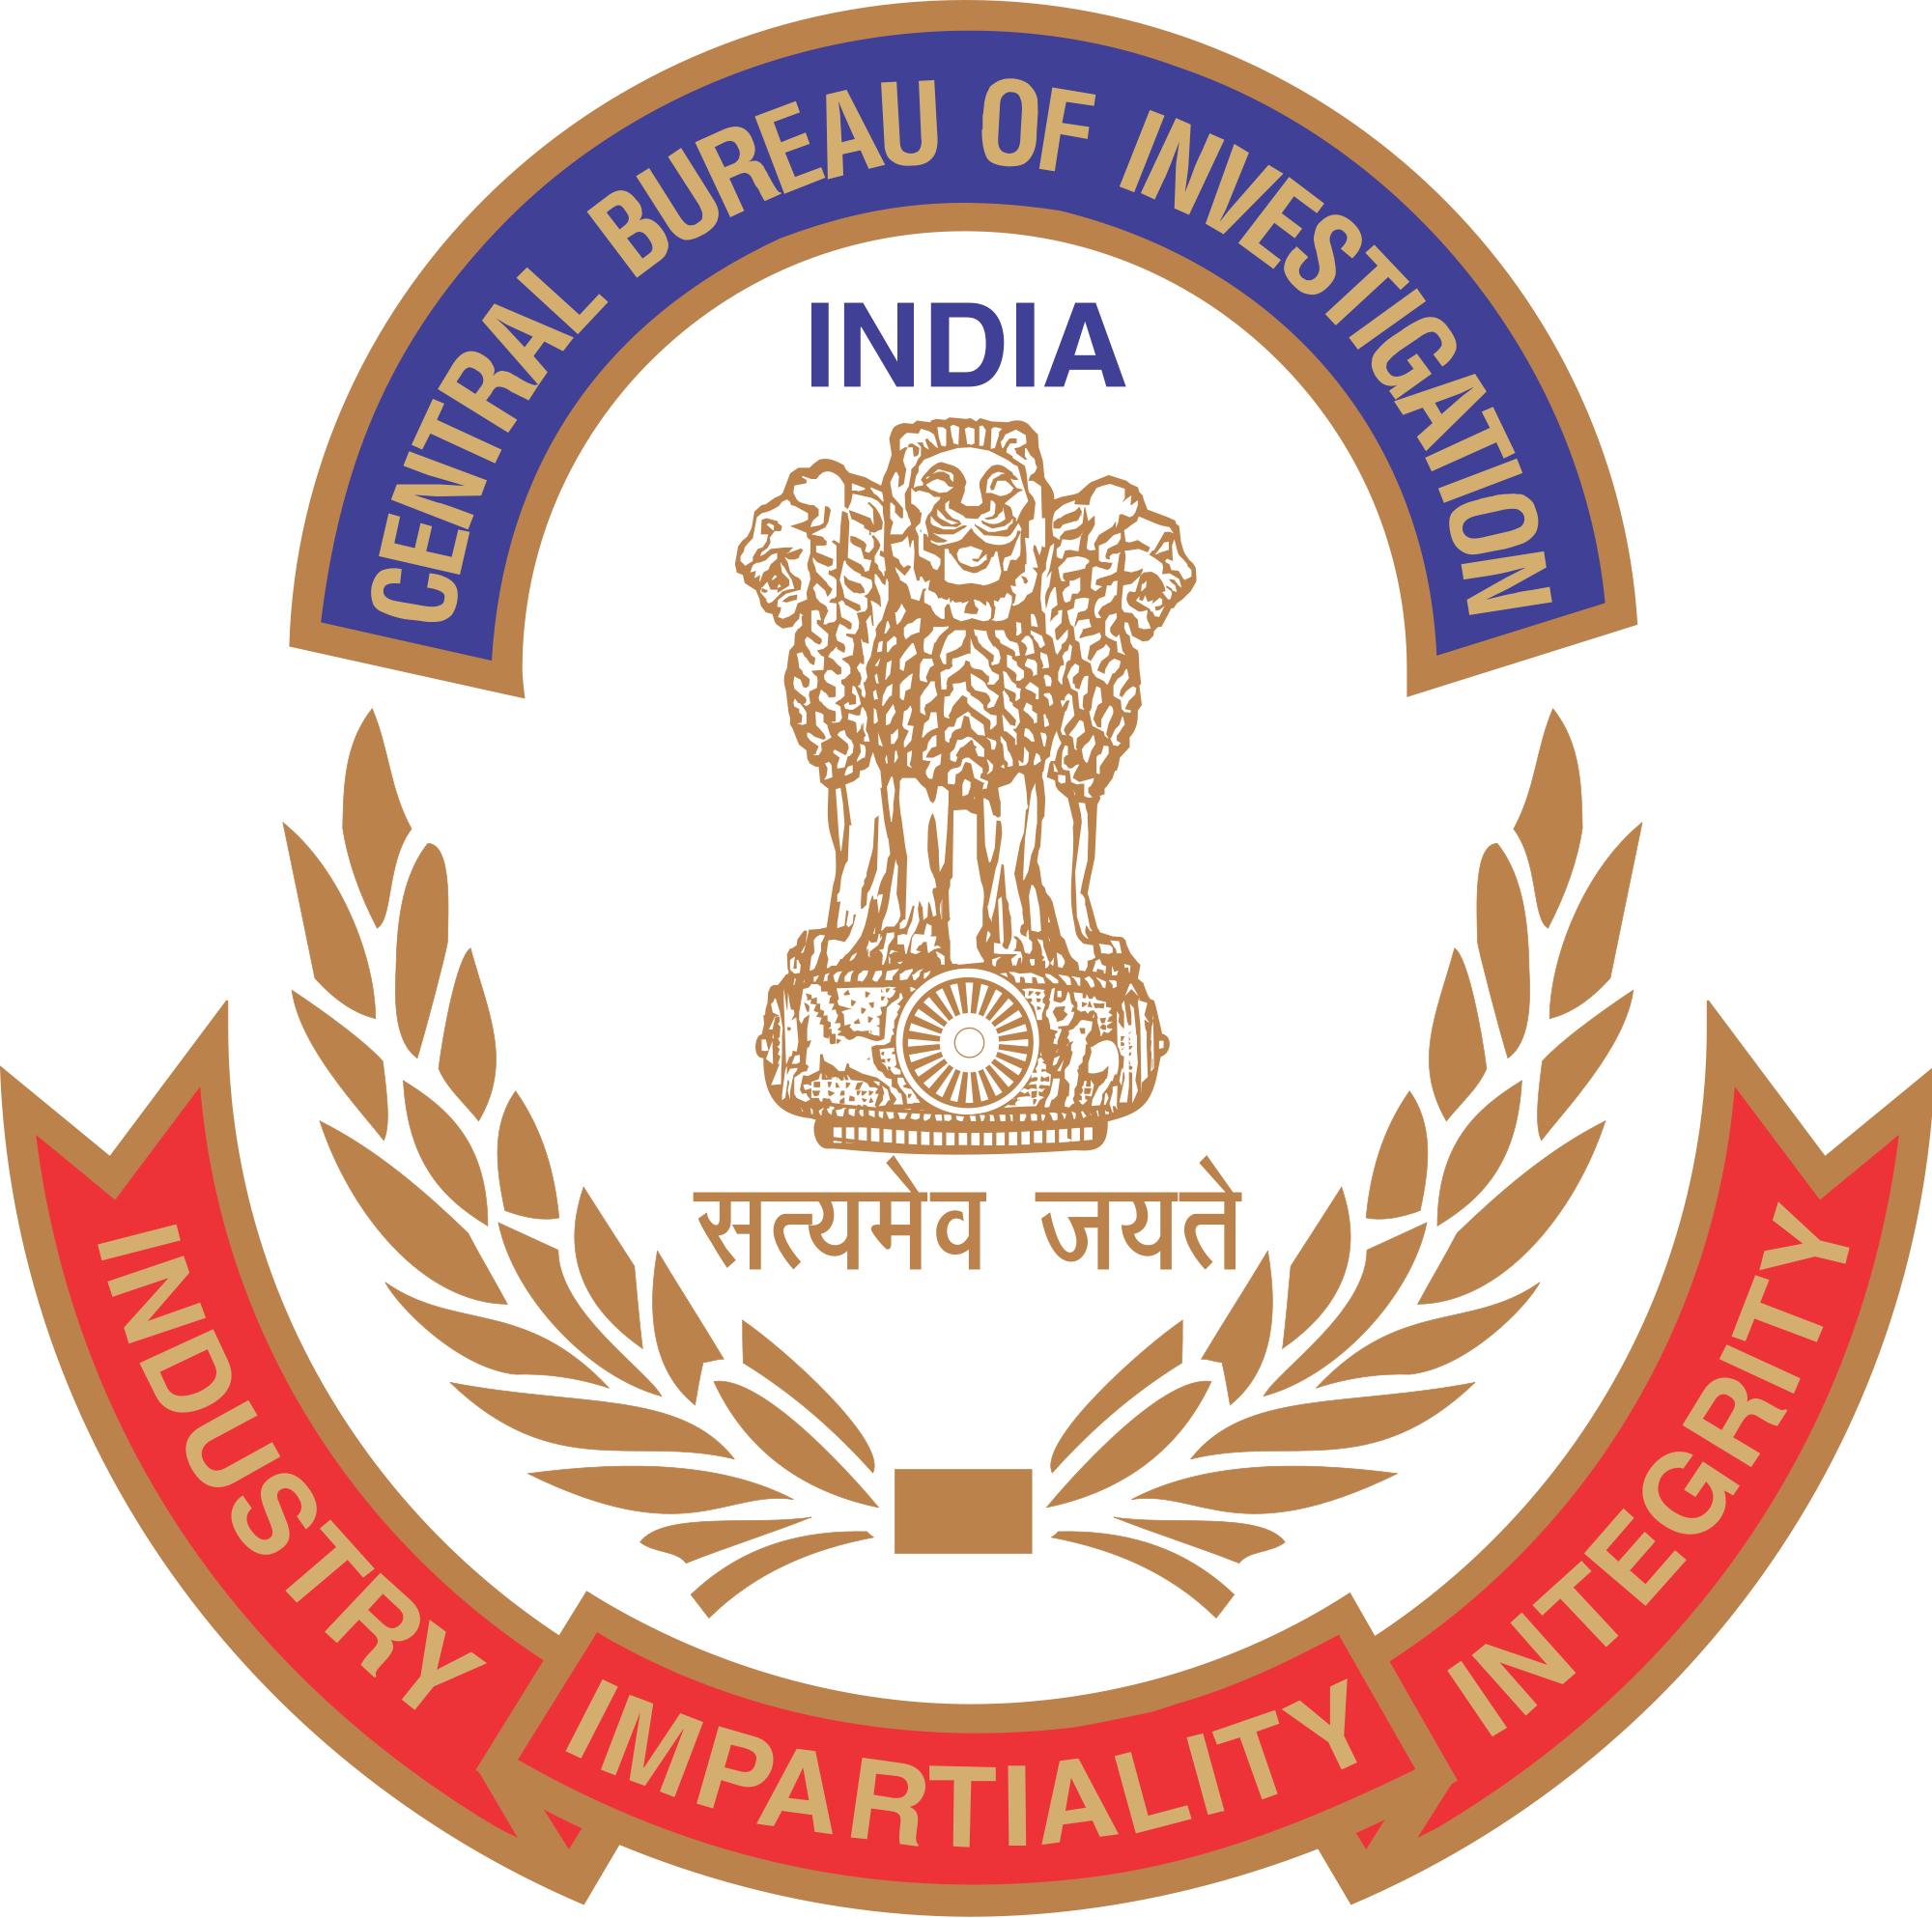 Indian Police Logo Hd Wallpaper Bestpicture1org